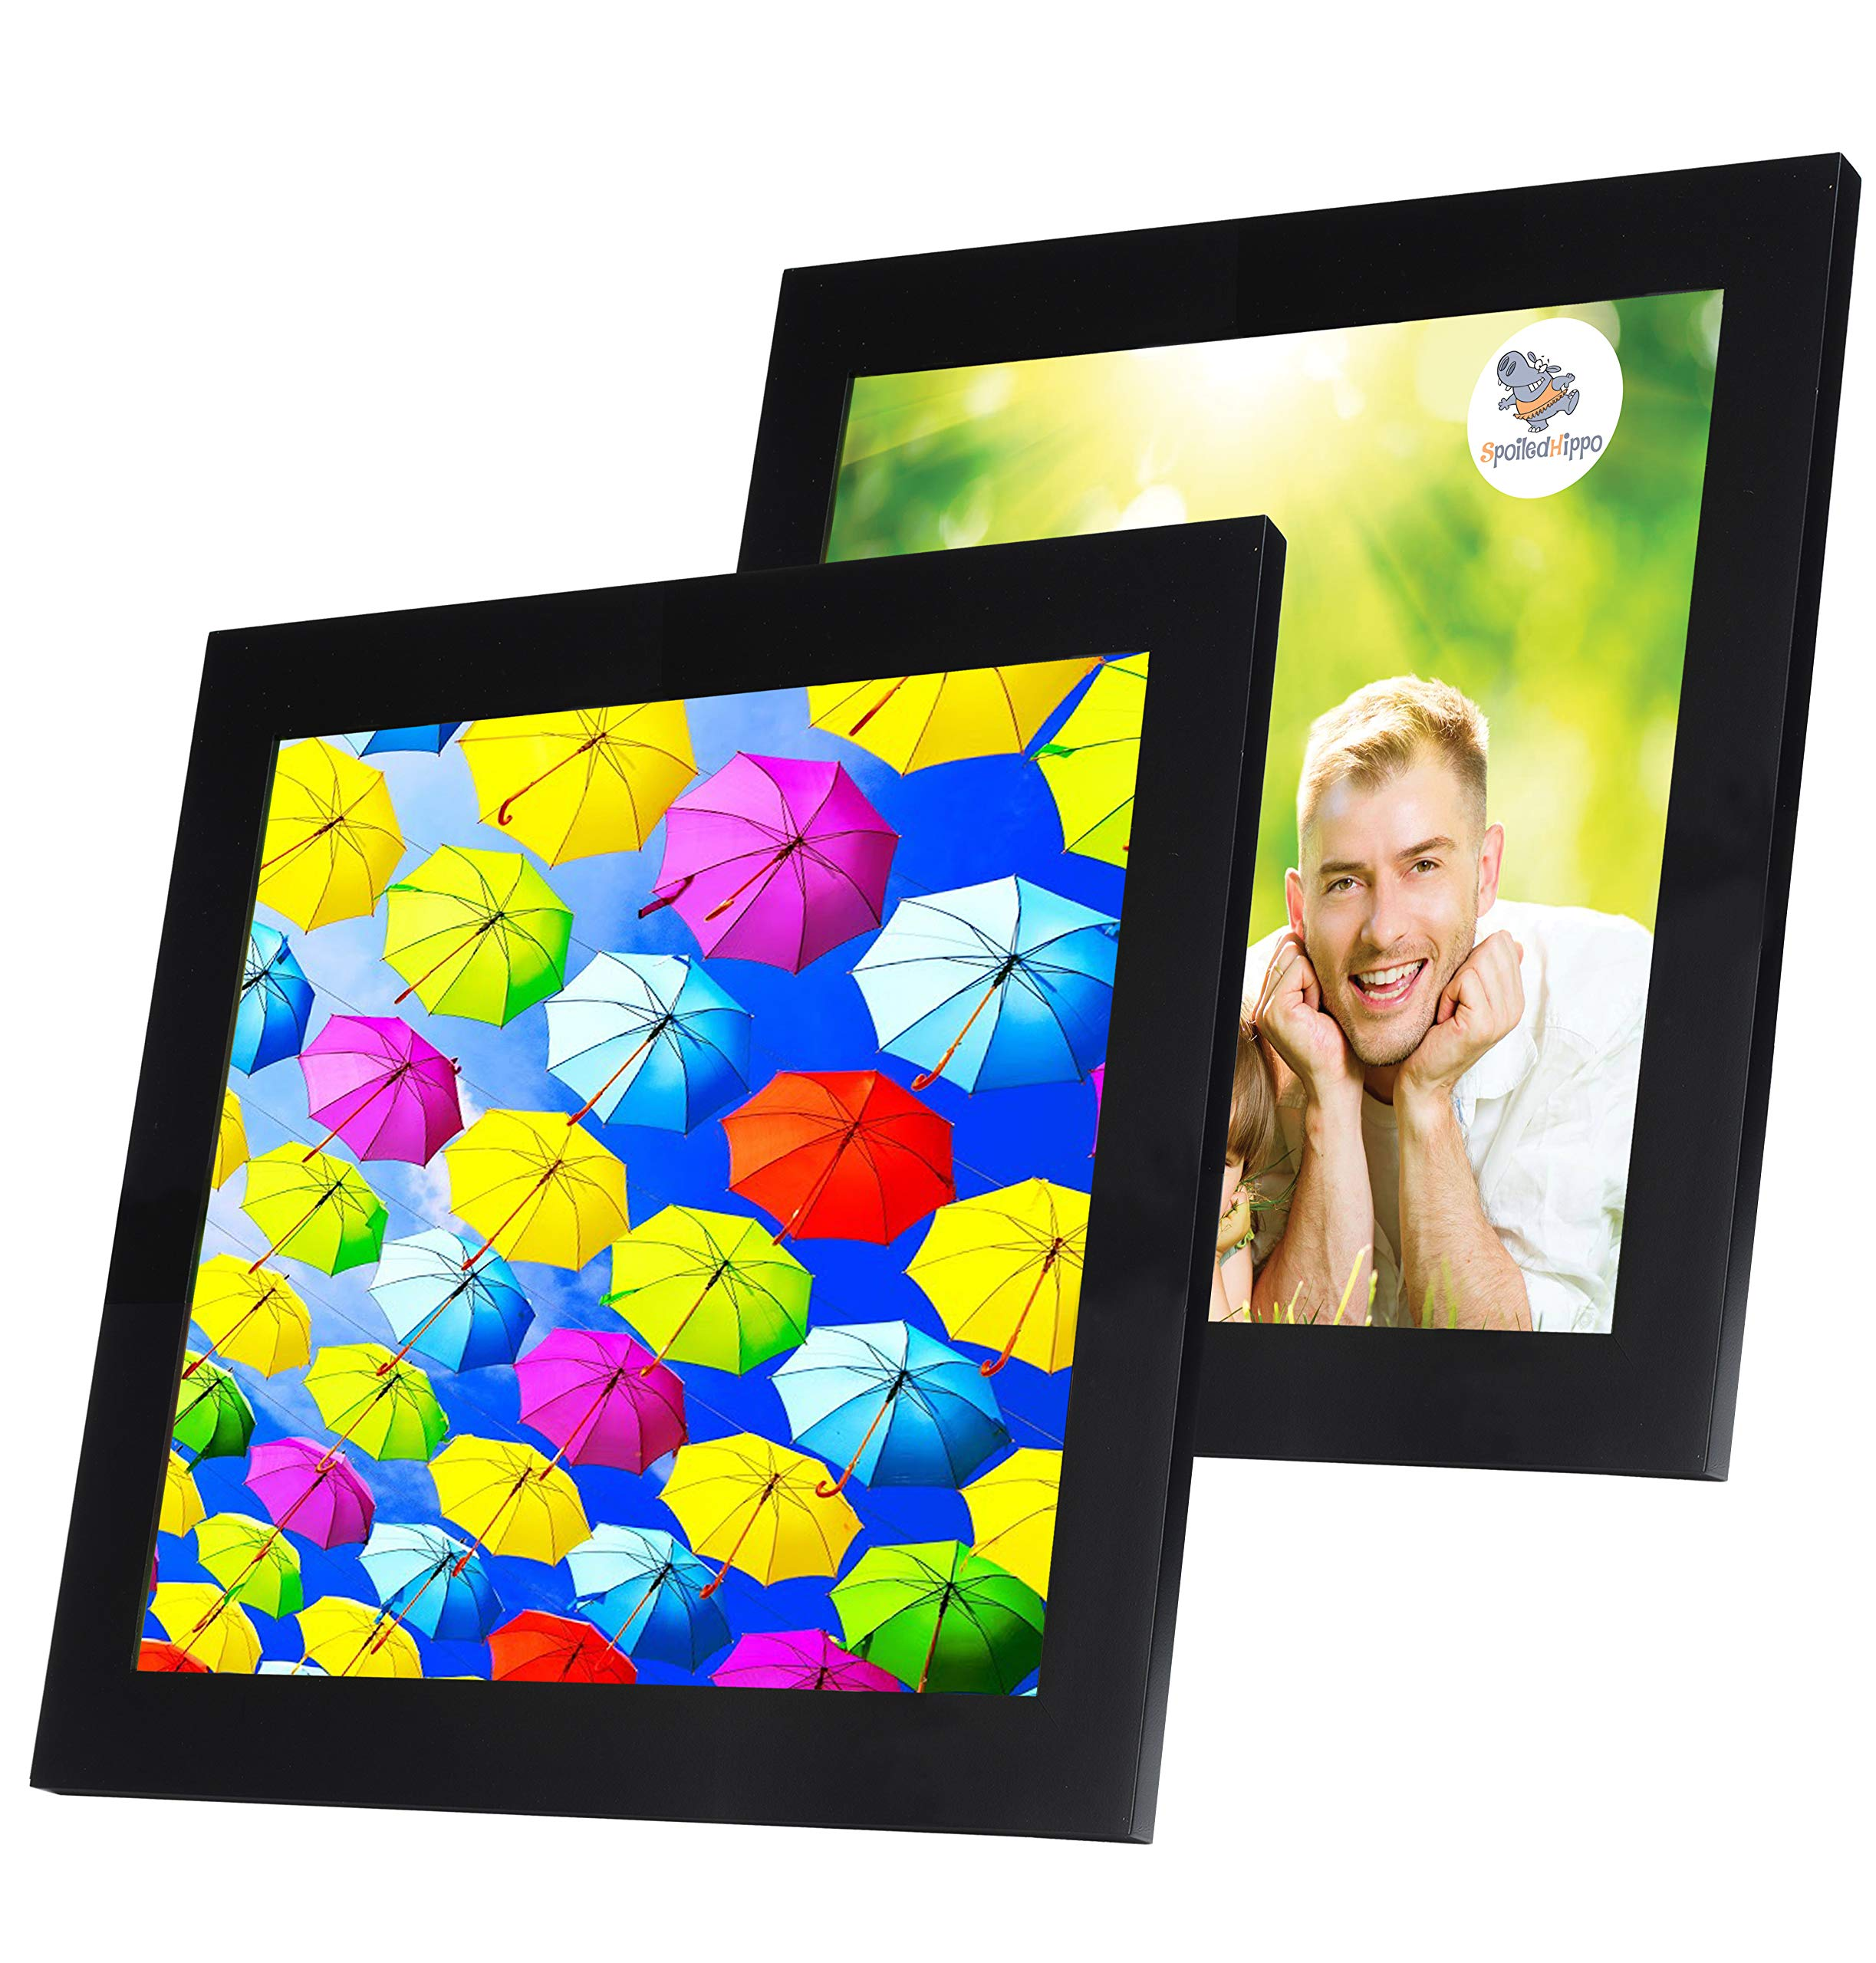 SpoiledHippo 10x10 Picture Frame Black (2 Pack) - Square Wood Photo Frames with Glass Cover - Made to Display 10 by 10 Inch Photos w/o Mat or 7.5x7.5 and 4x4 with Mats - Hanging or Standing by SpoiledHippo